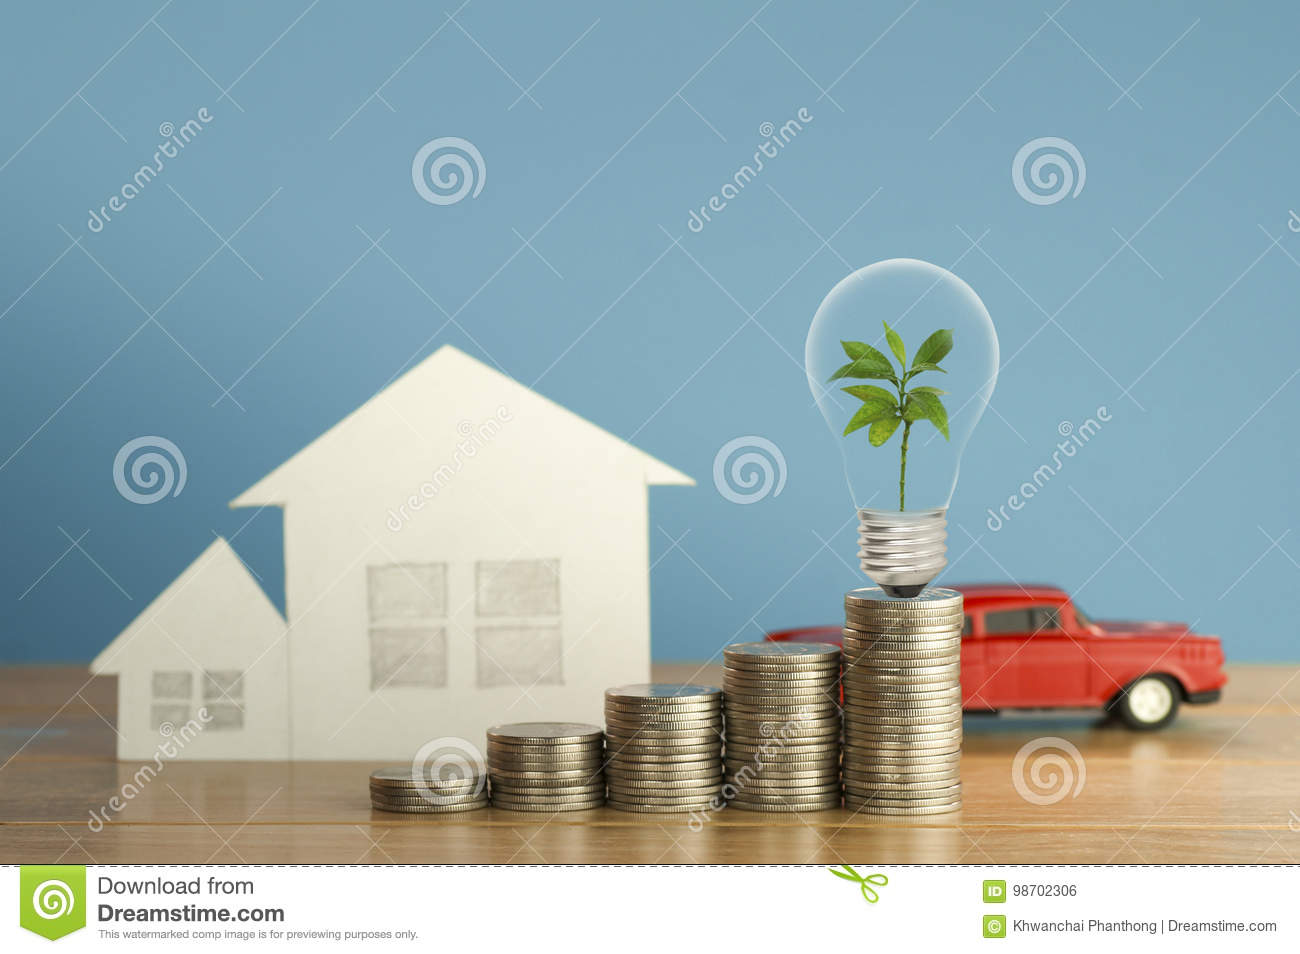 Pile of money coins with small green tree, light bulb, toy car and paper home,on wood and soft blue background, concept